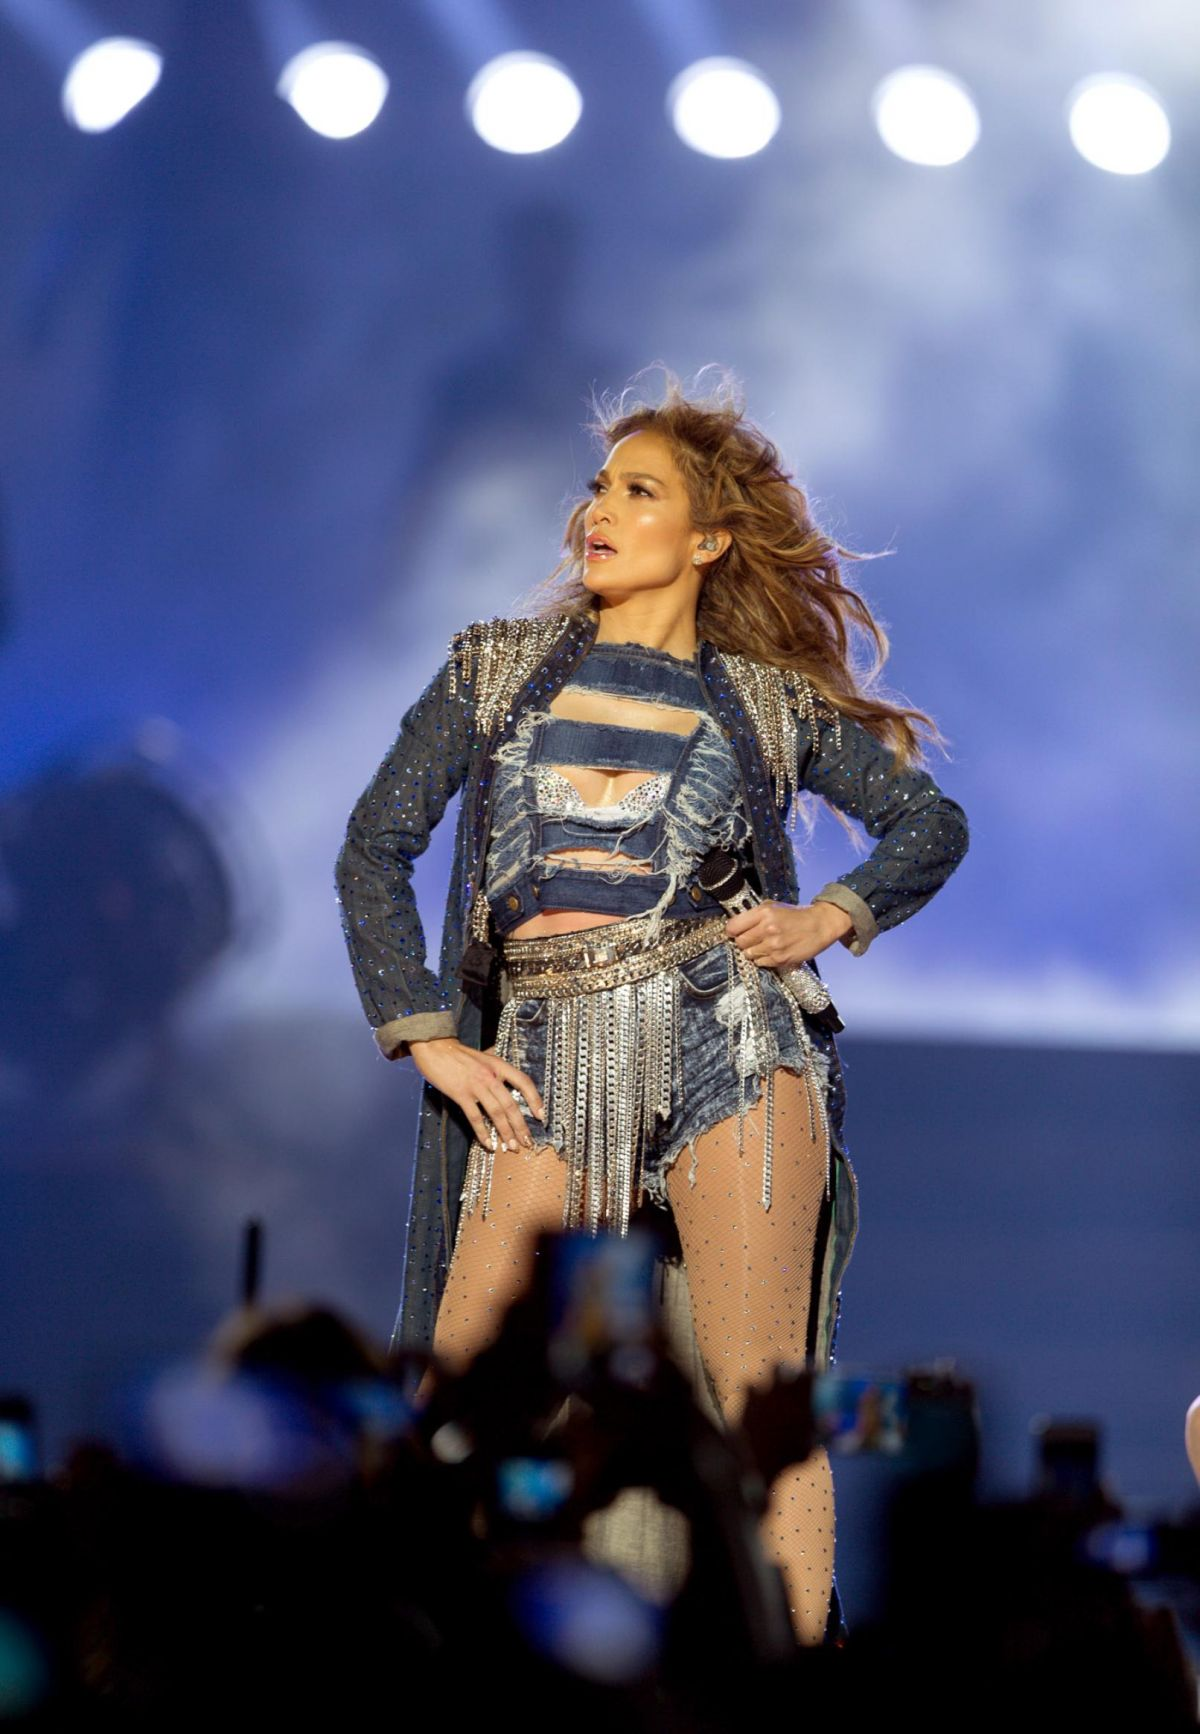 Jennifer Lopez Performing Live At The Meydan Racecourse In